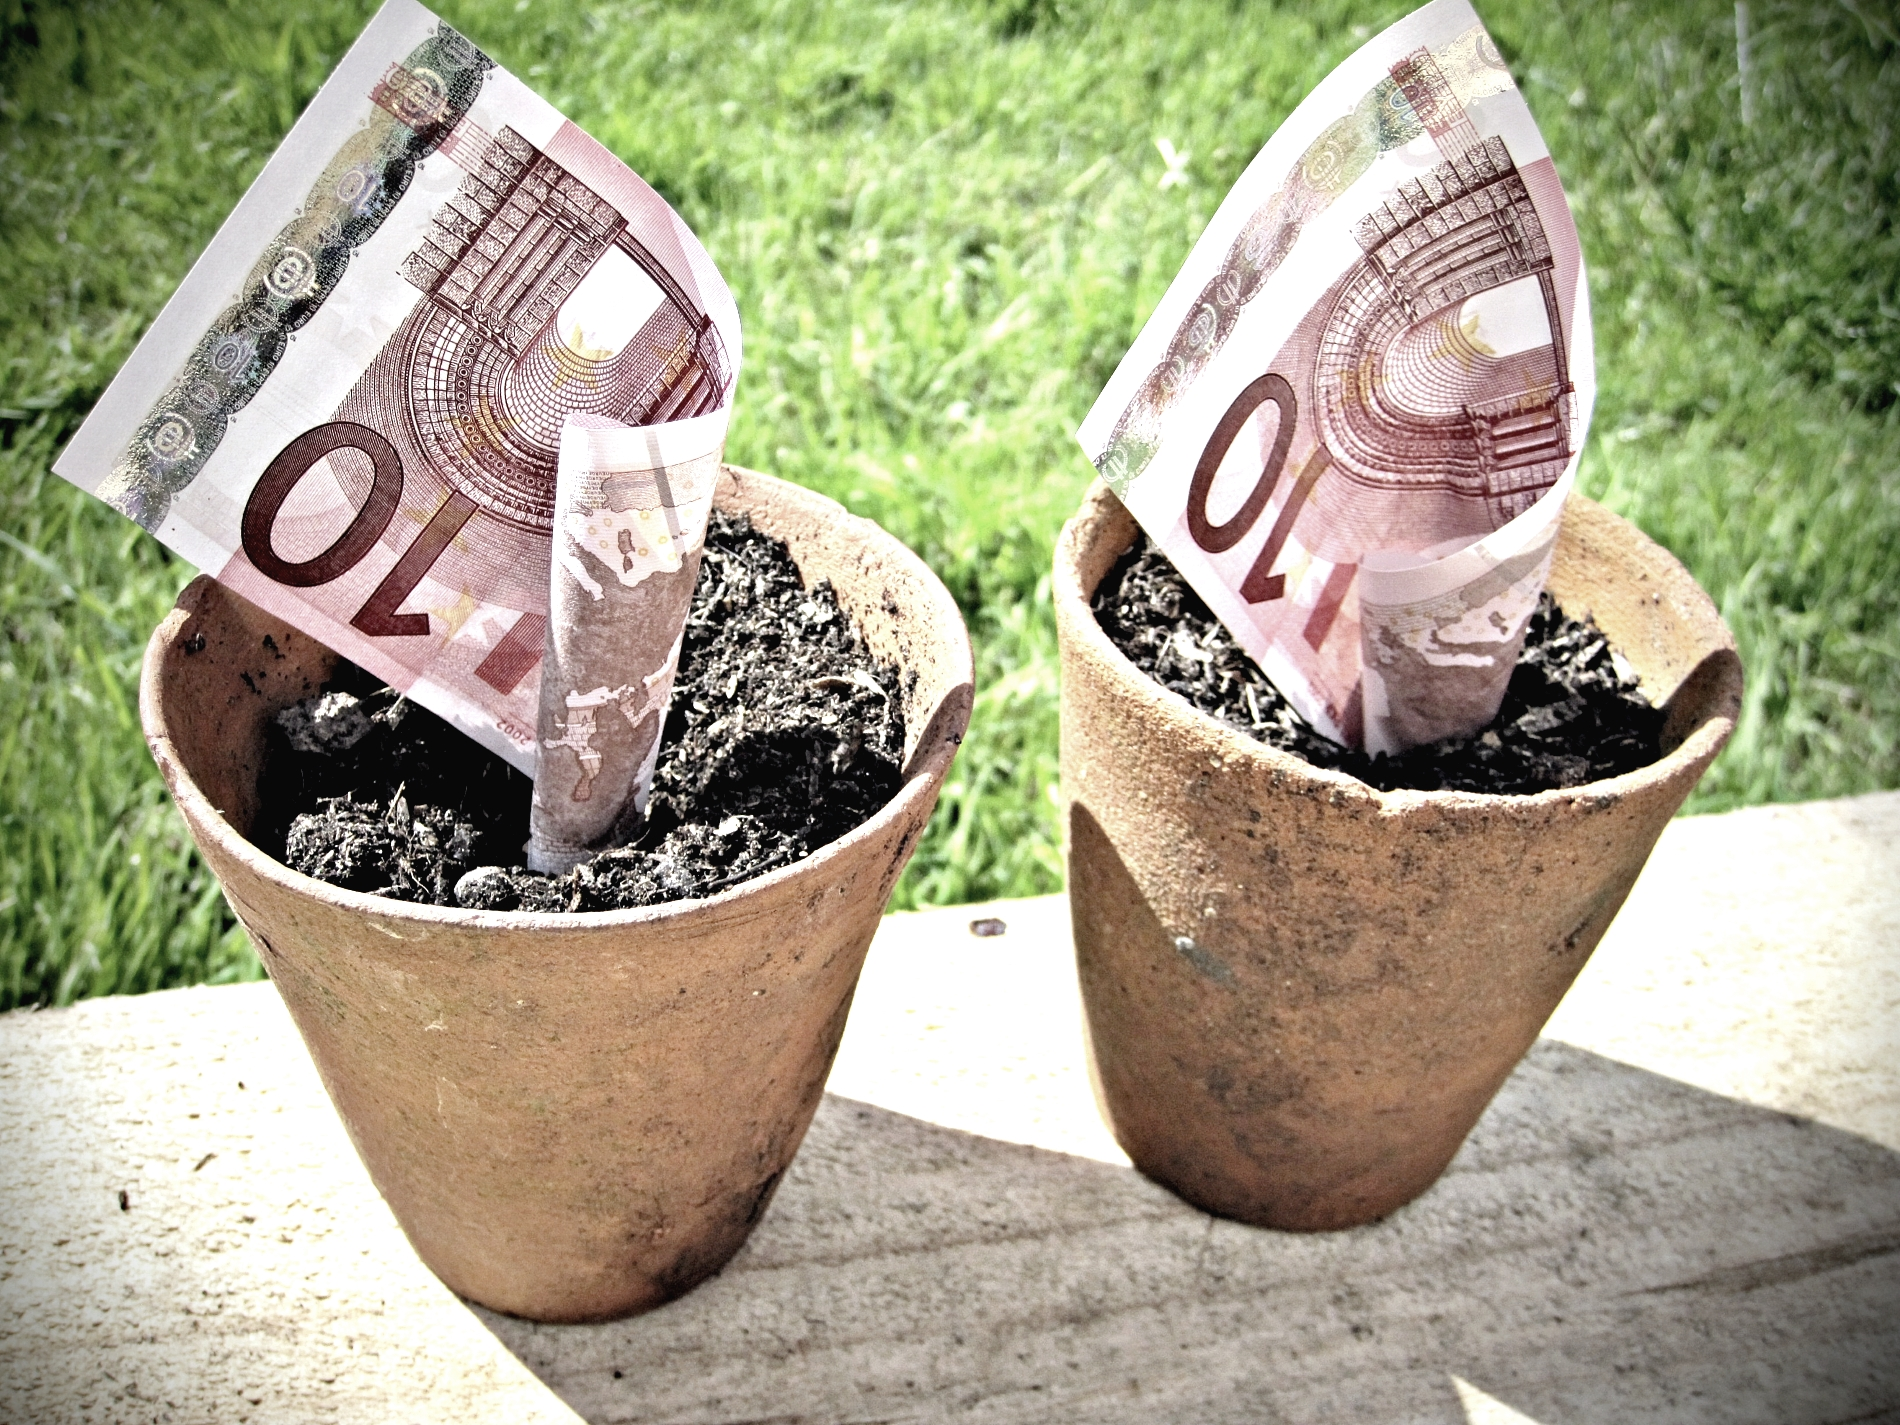 """Euro Money in Pots"" by Images Money (Flickr, CC BY 2.0)."